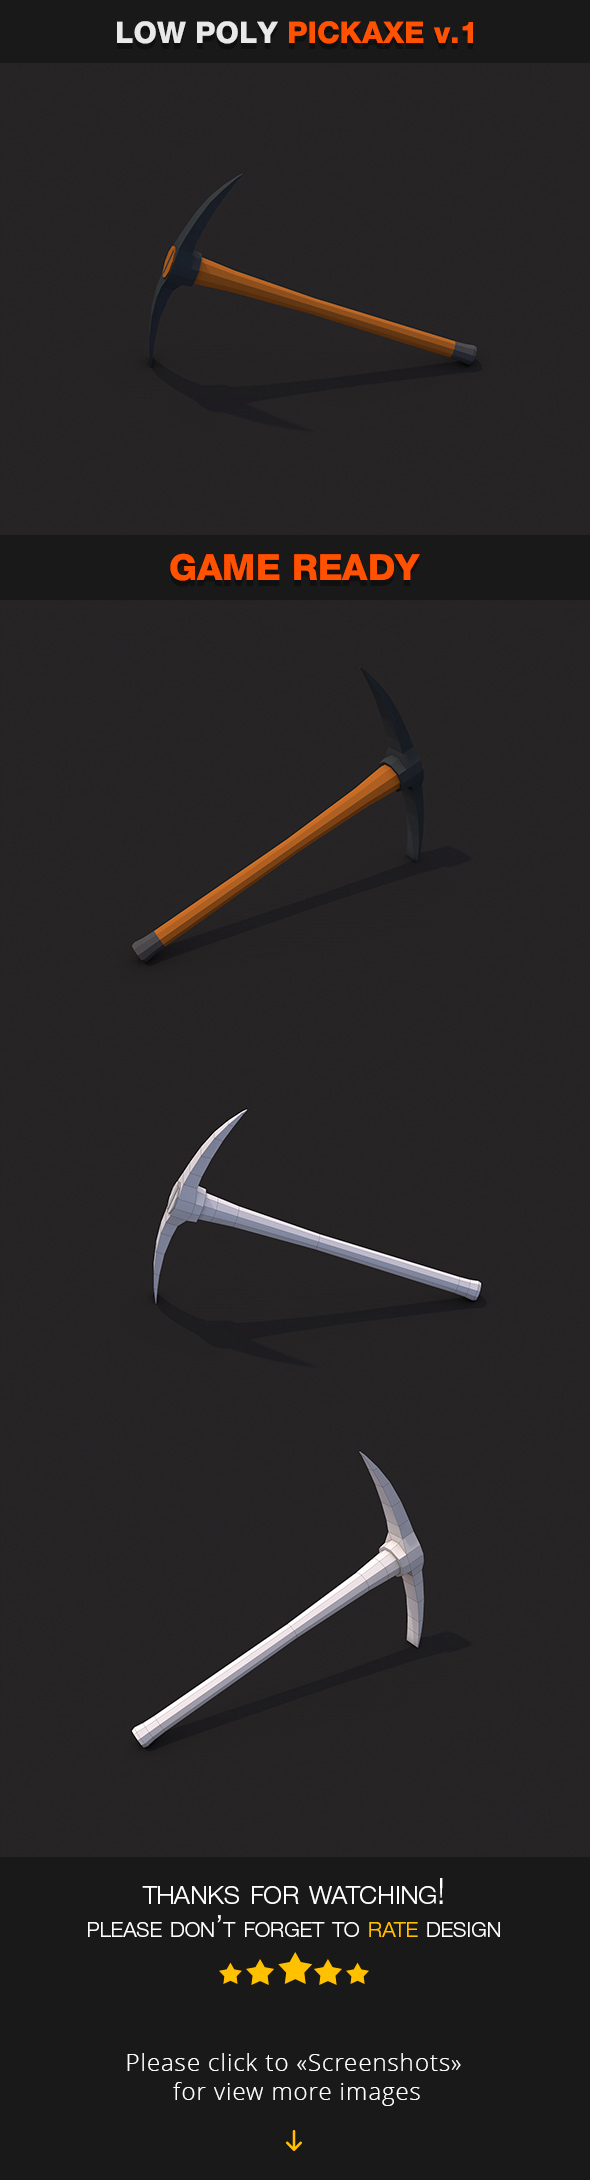 Low Poly Pickaxe v.1 - 3DOcean Item for Sale